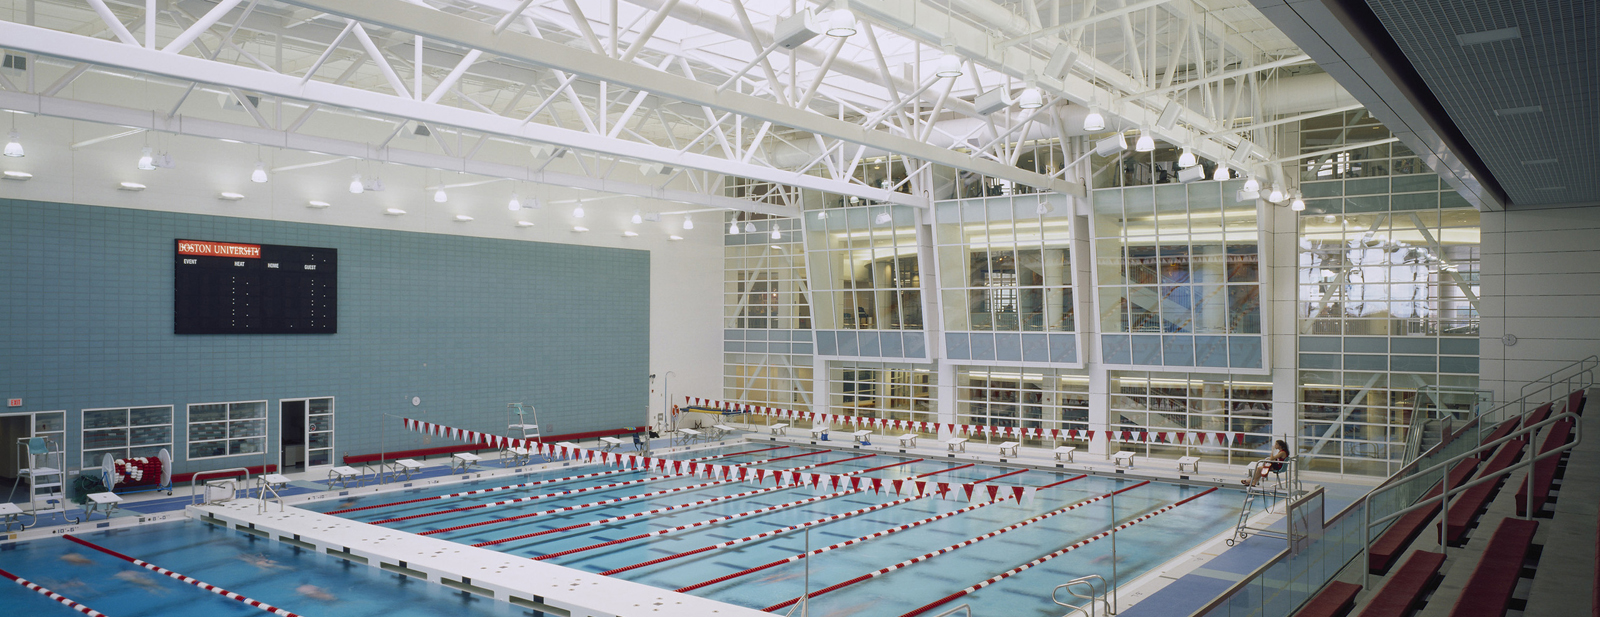 Boston University Fitness And Recreation Center And Agganis Arena Cannon Design